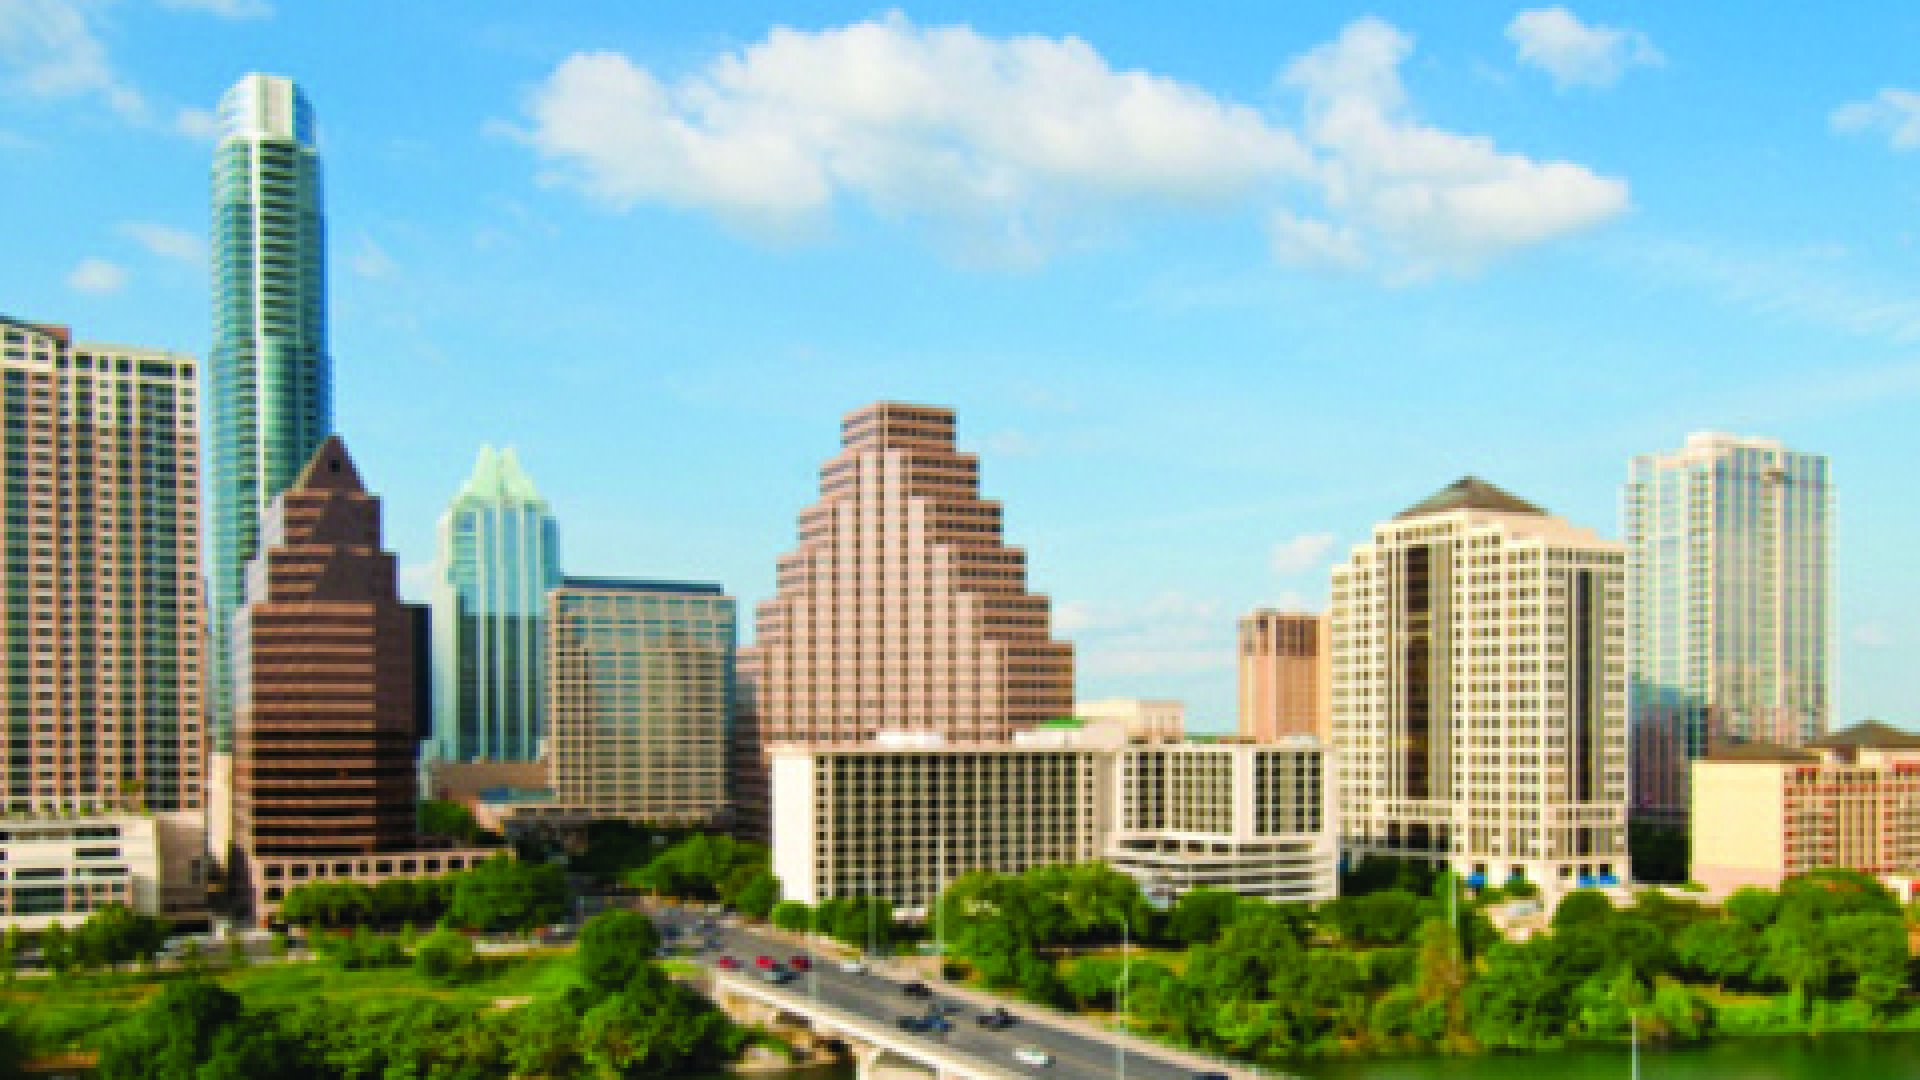 Tips for Building a Cool Business in Austin